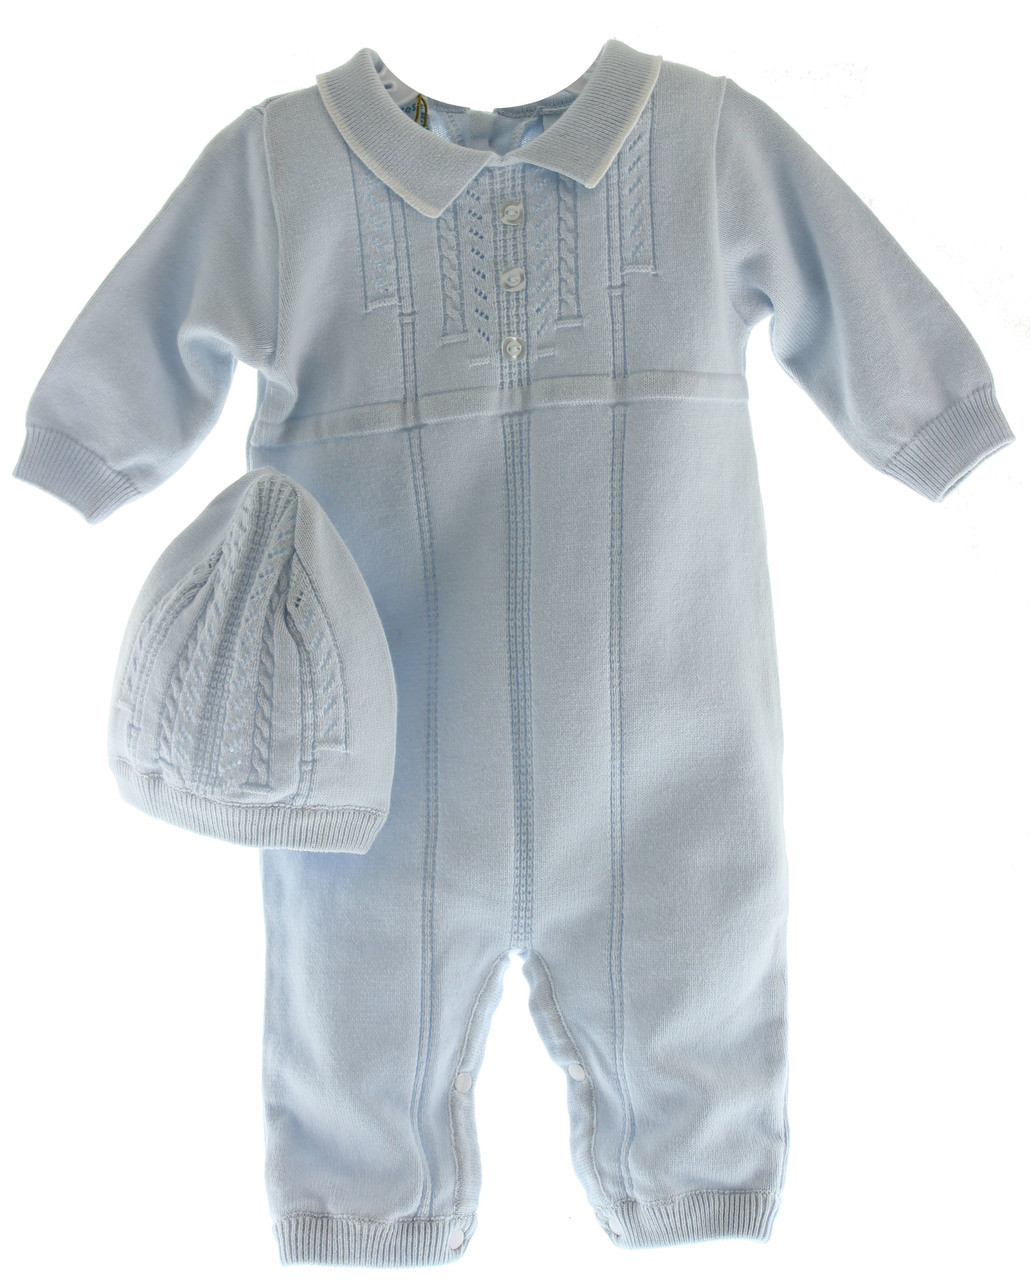 416322f1e1e0 Newborn Boys Blue Knitted Long Romper Feltman 6006. Click to enlarge